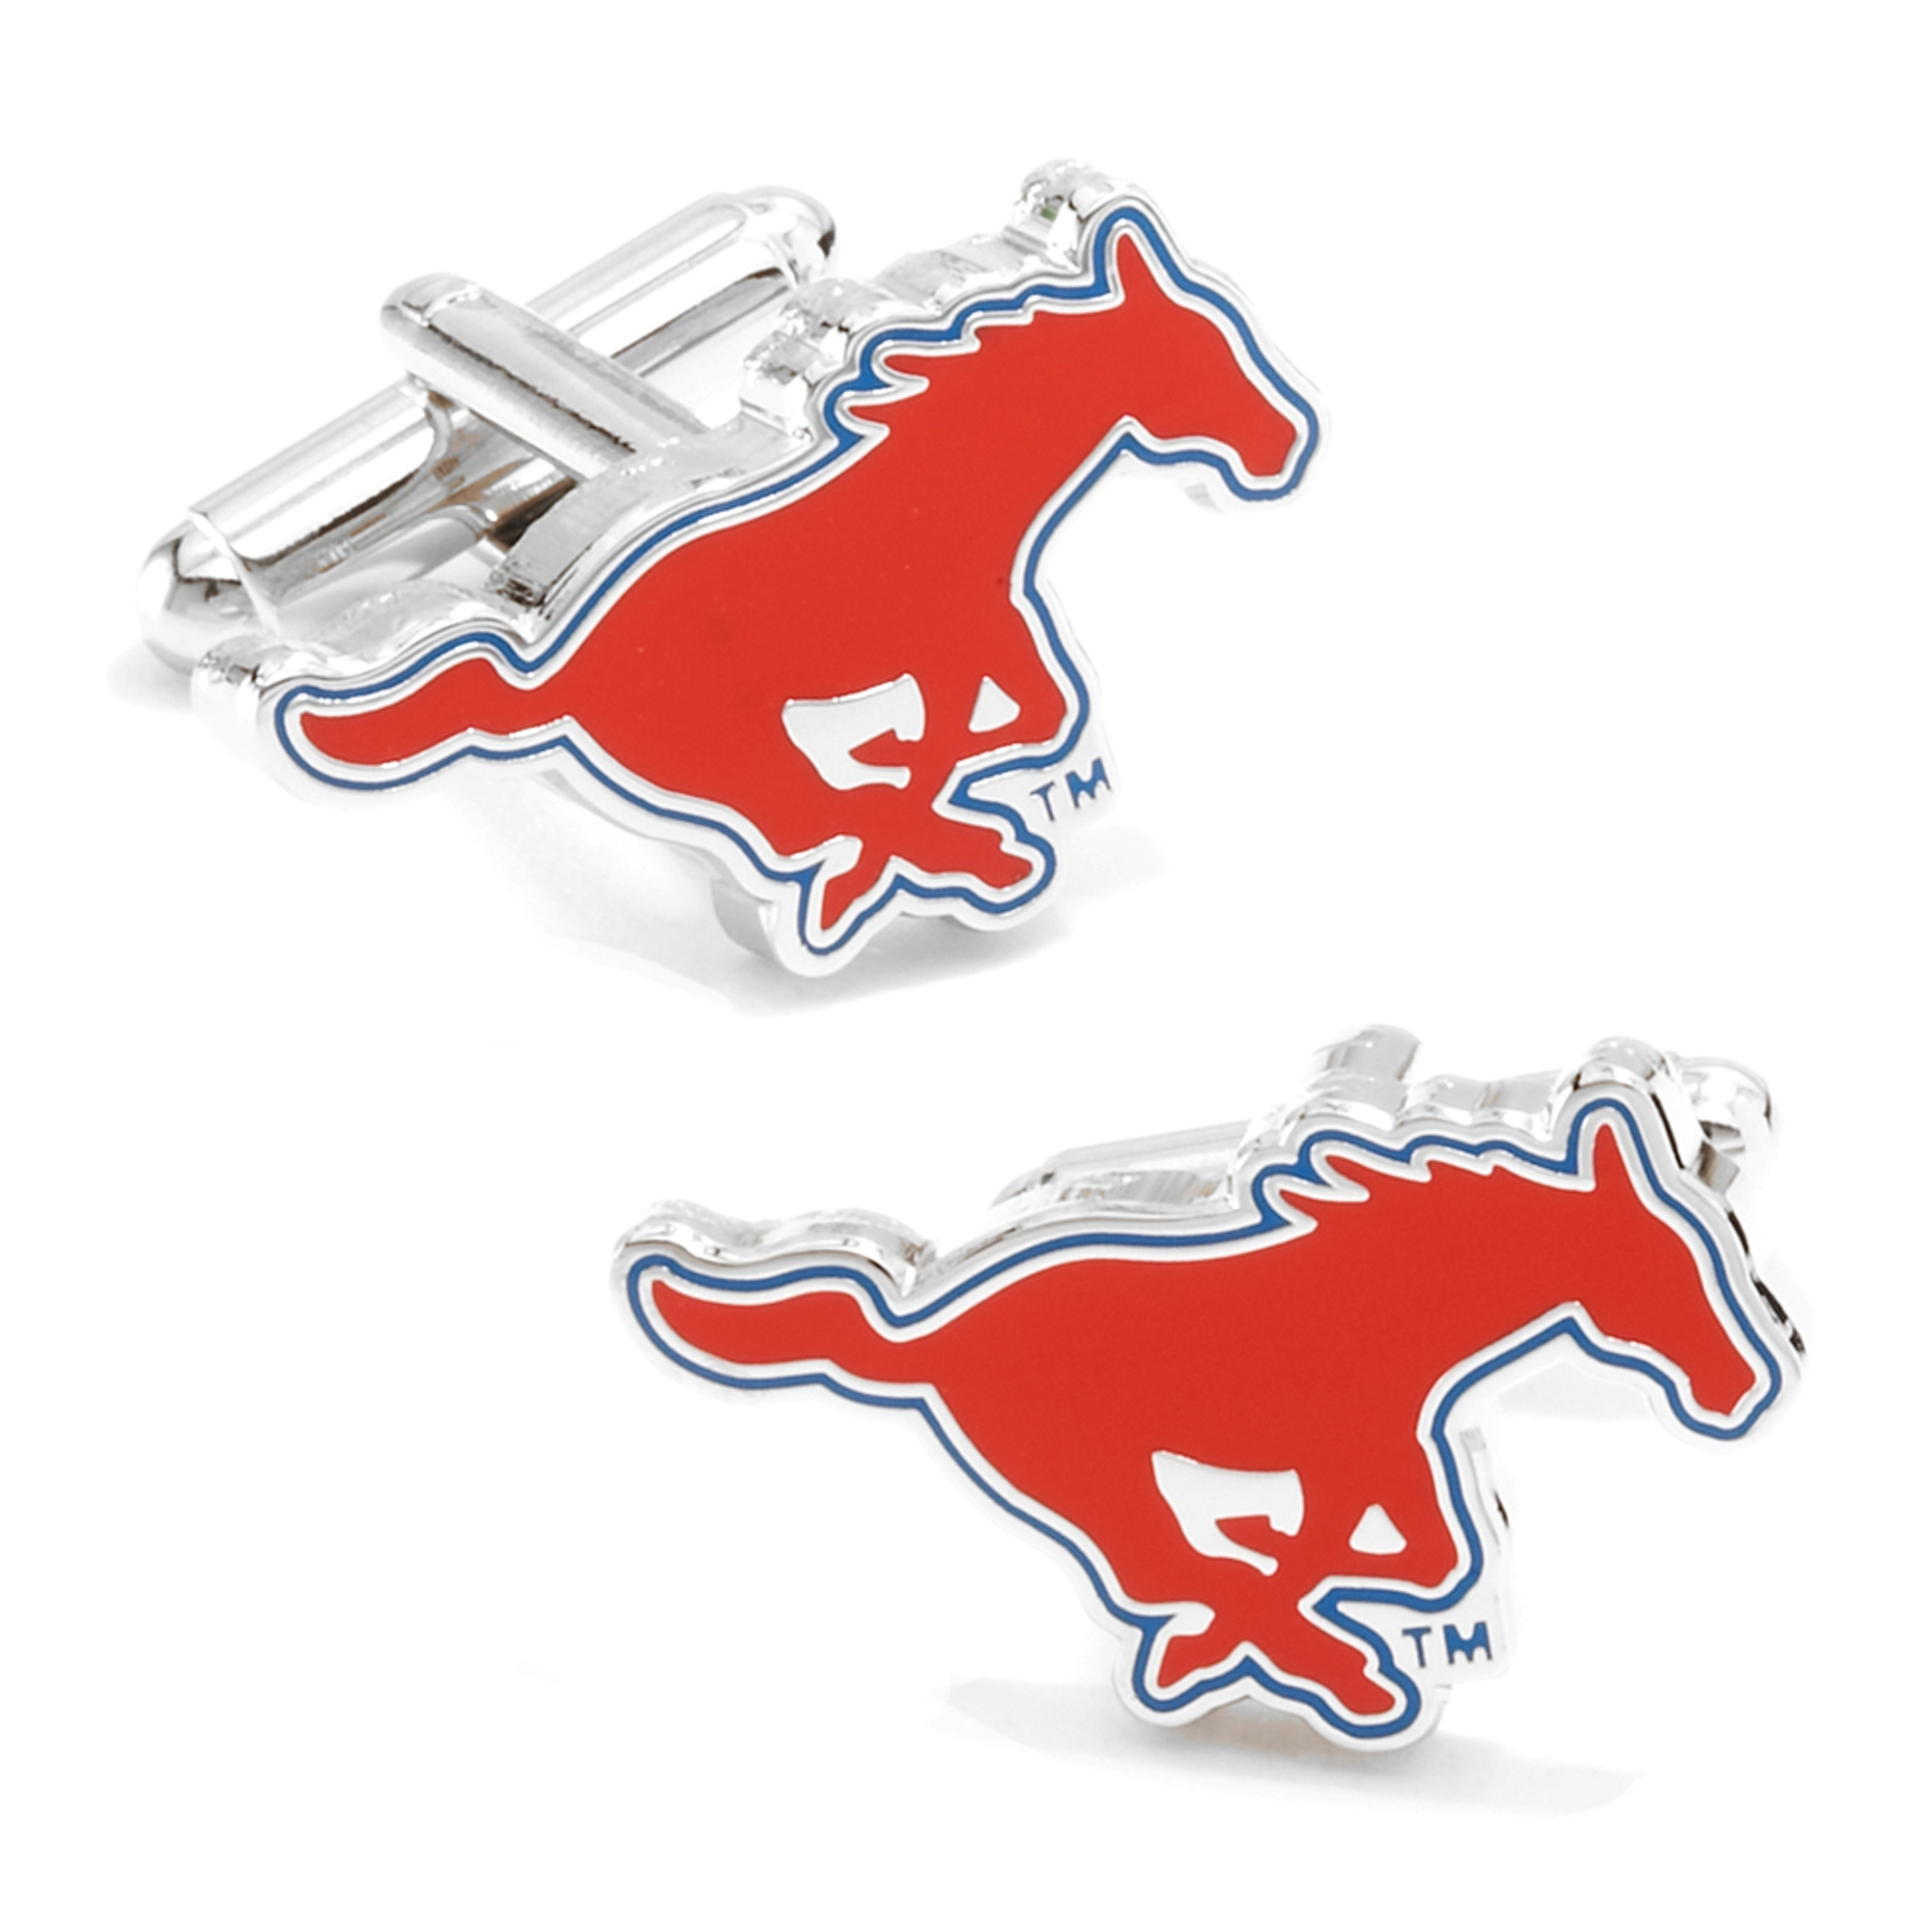 NCAA Mens SMU Mustangs Cufflinks w/ New Collectible Gift Box PD-SMU-SL